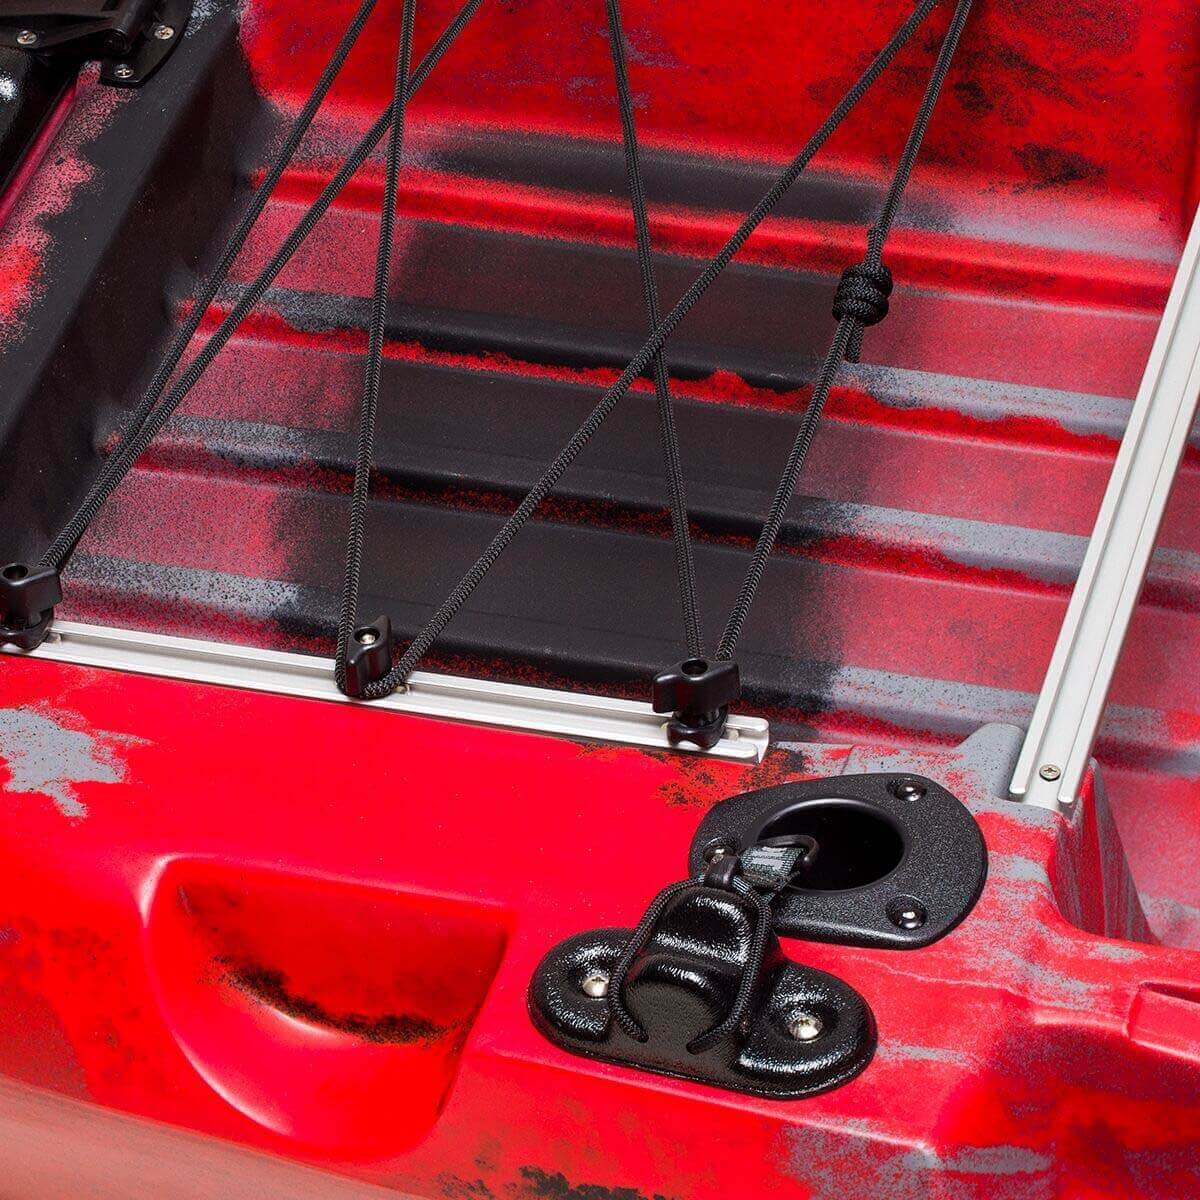 The tankwell, bungee system, and Fly Rod Management System at the stern of the Jackson Kayak Big Rig FD fishing kayak.